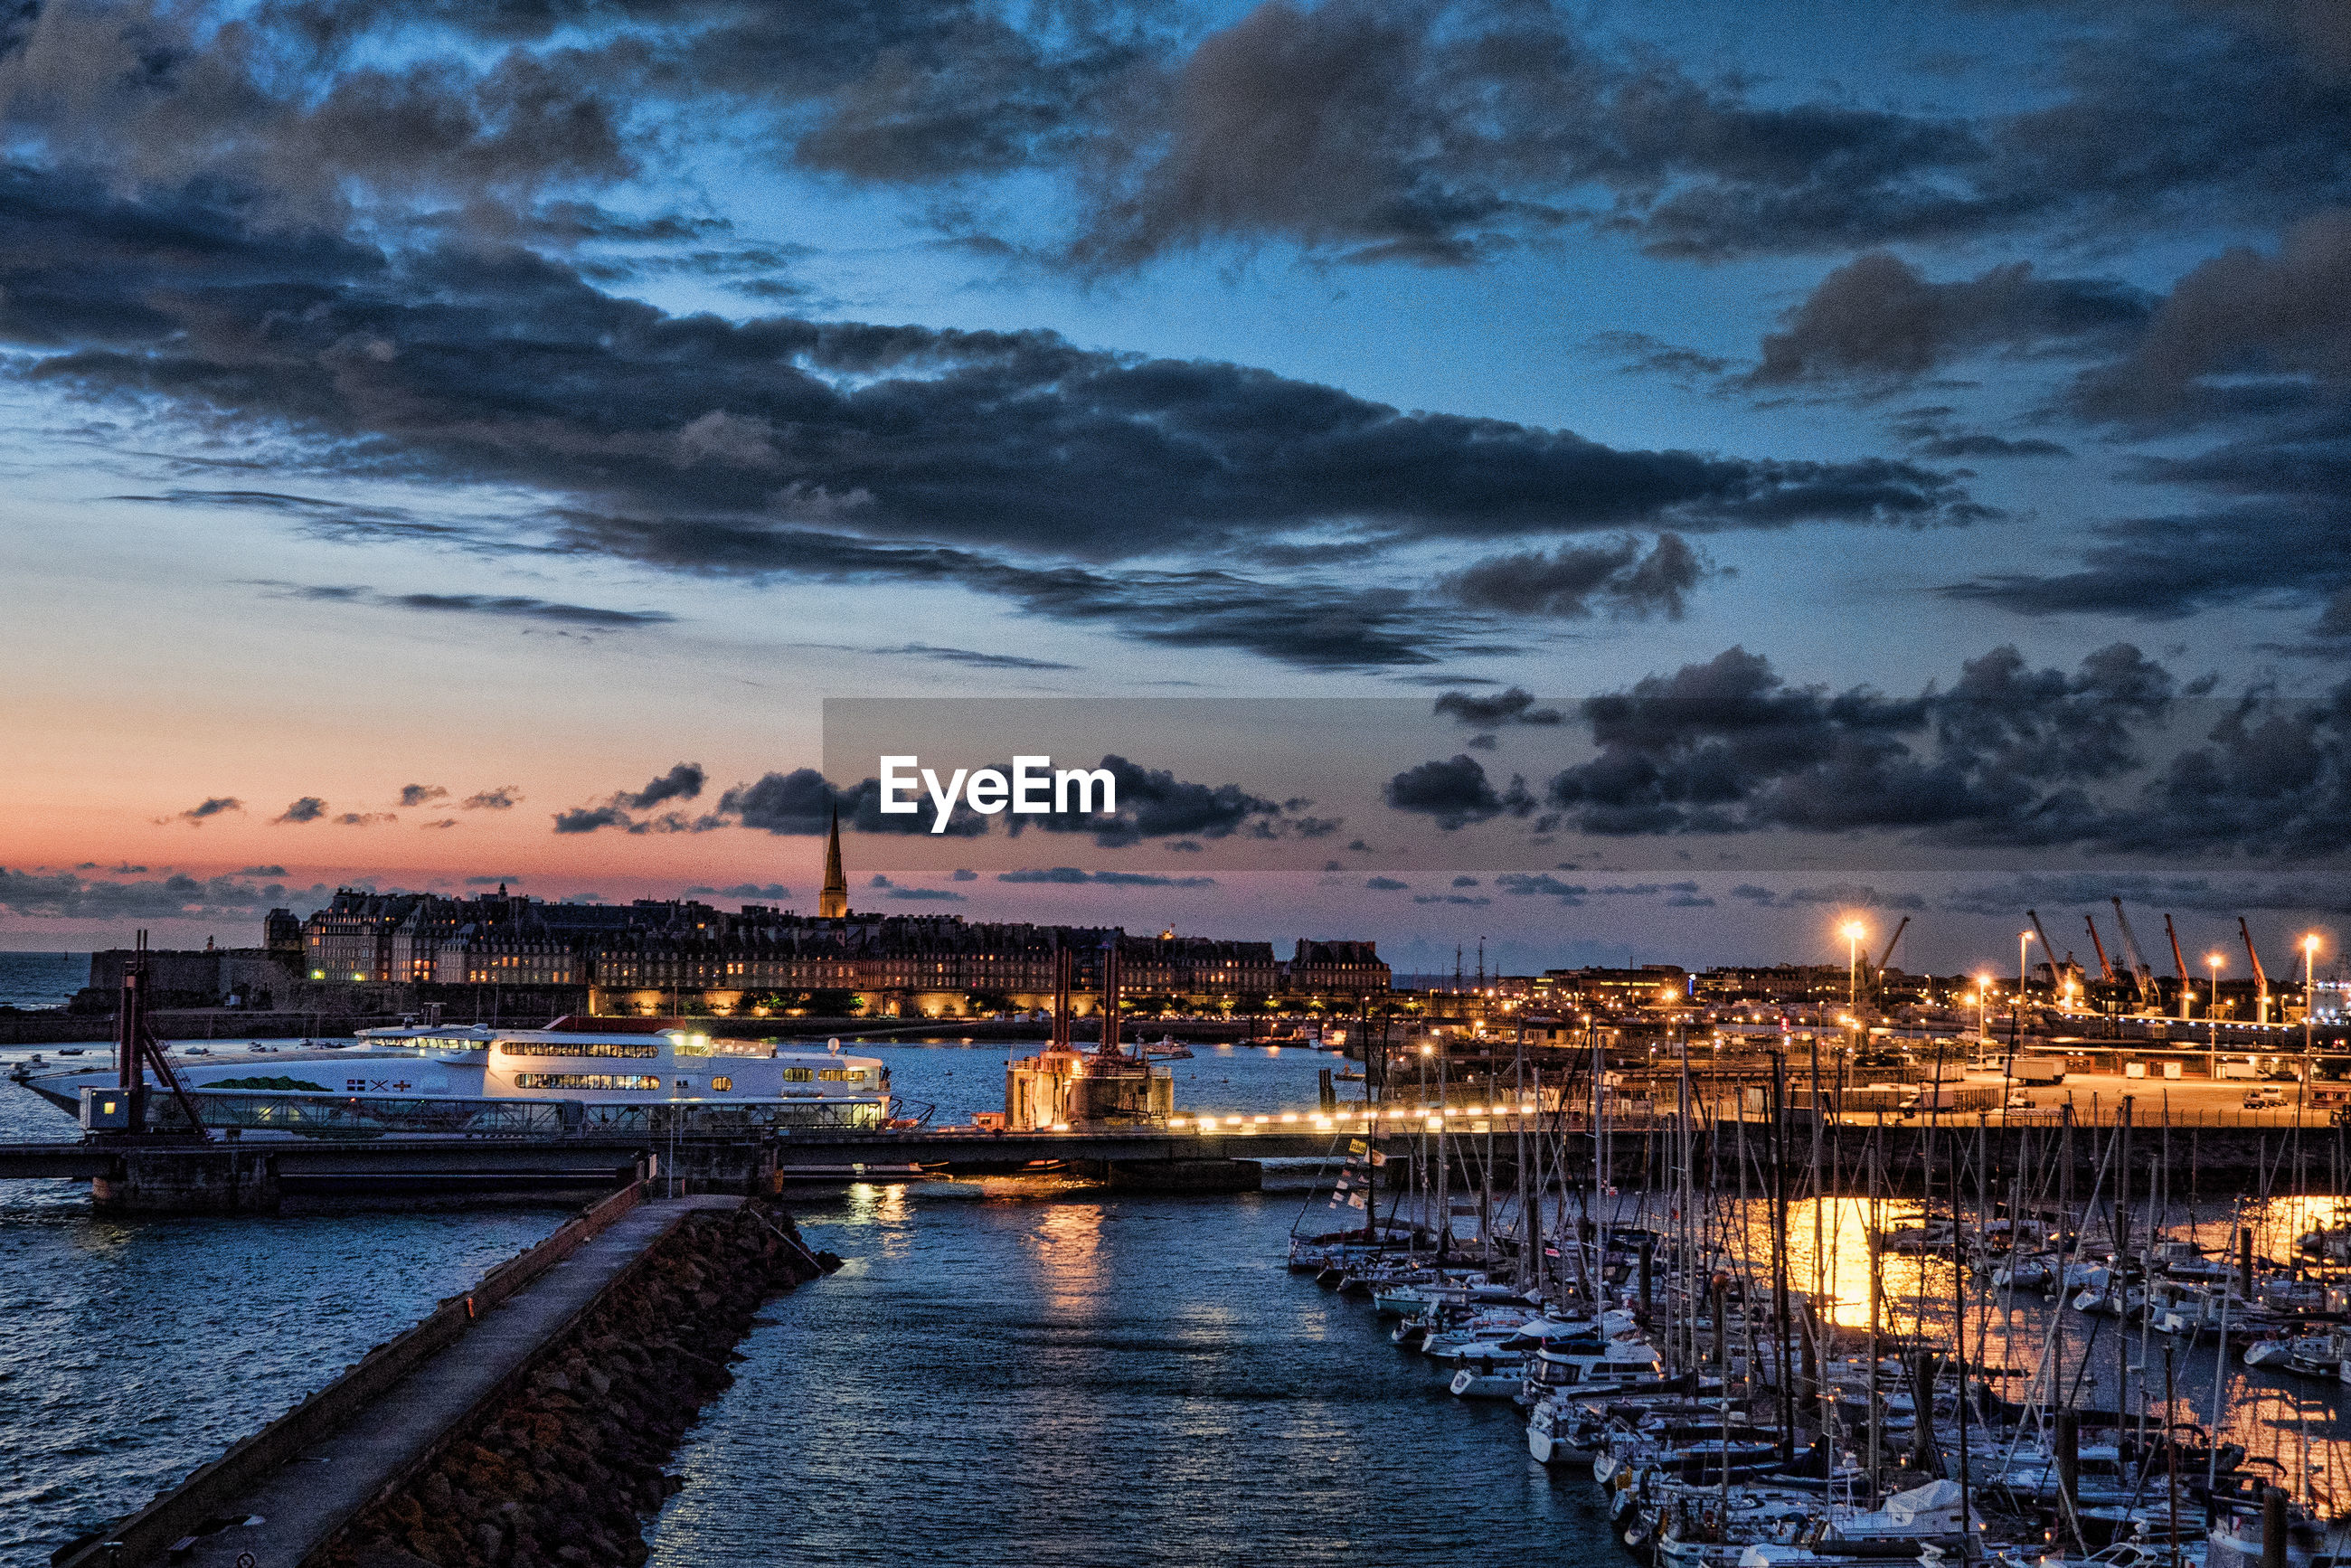 VIEW OF HARBOR AGAINST SKY